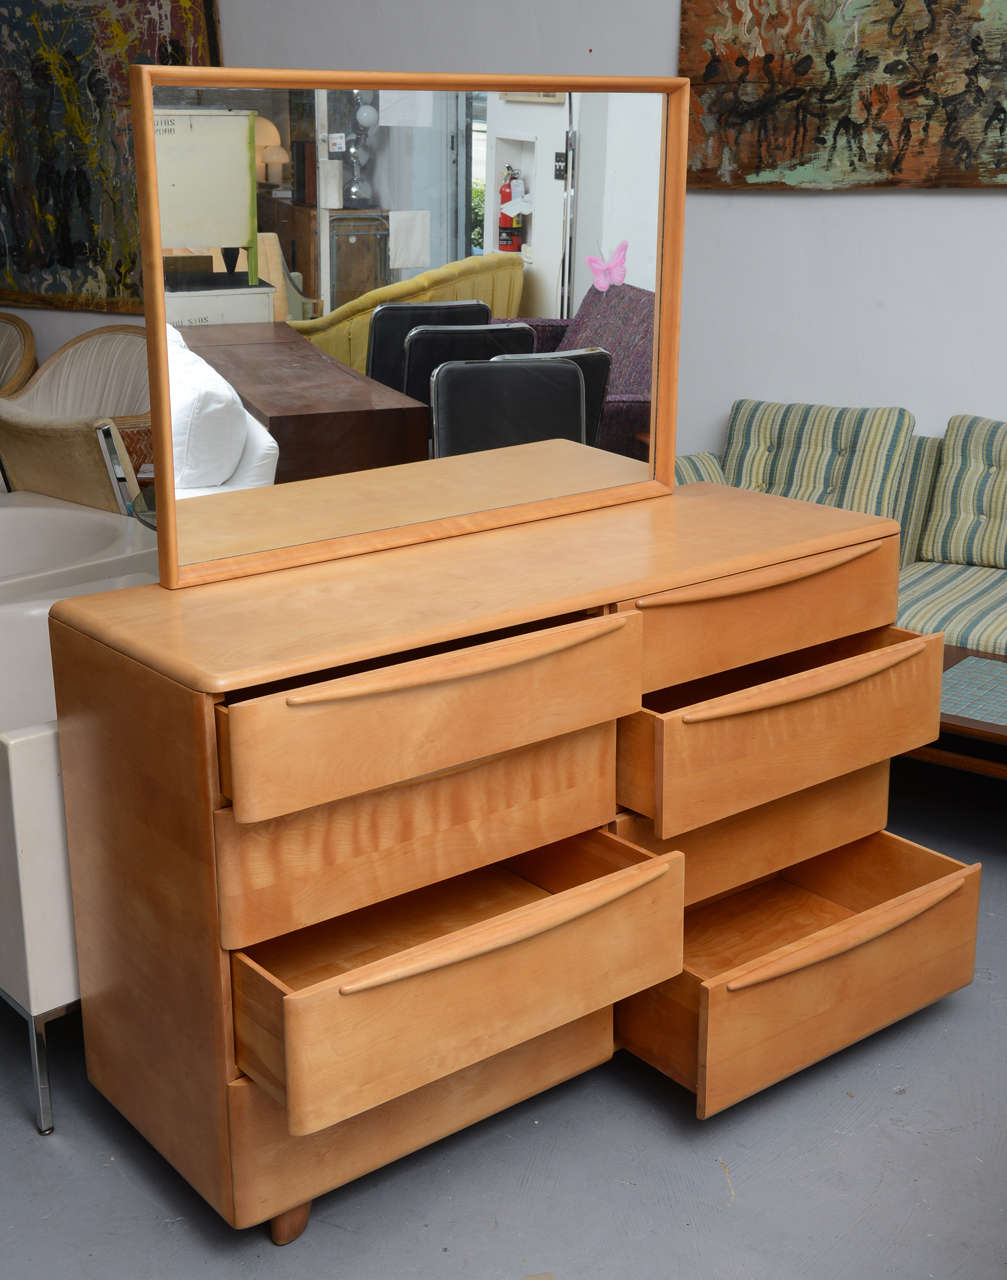 39 mr and mrs 39 maple dresser by heywood wakefield encore bedroom group 1960s at 1stdibs for 1960 bedroom furniture for sale